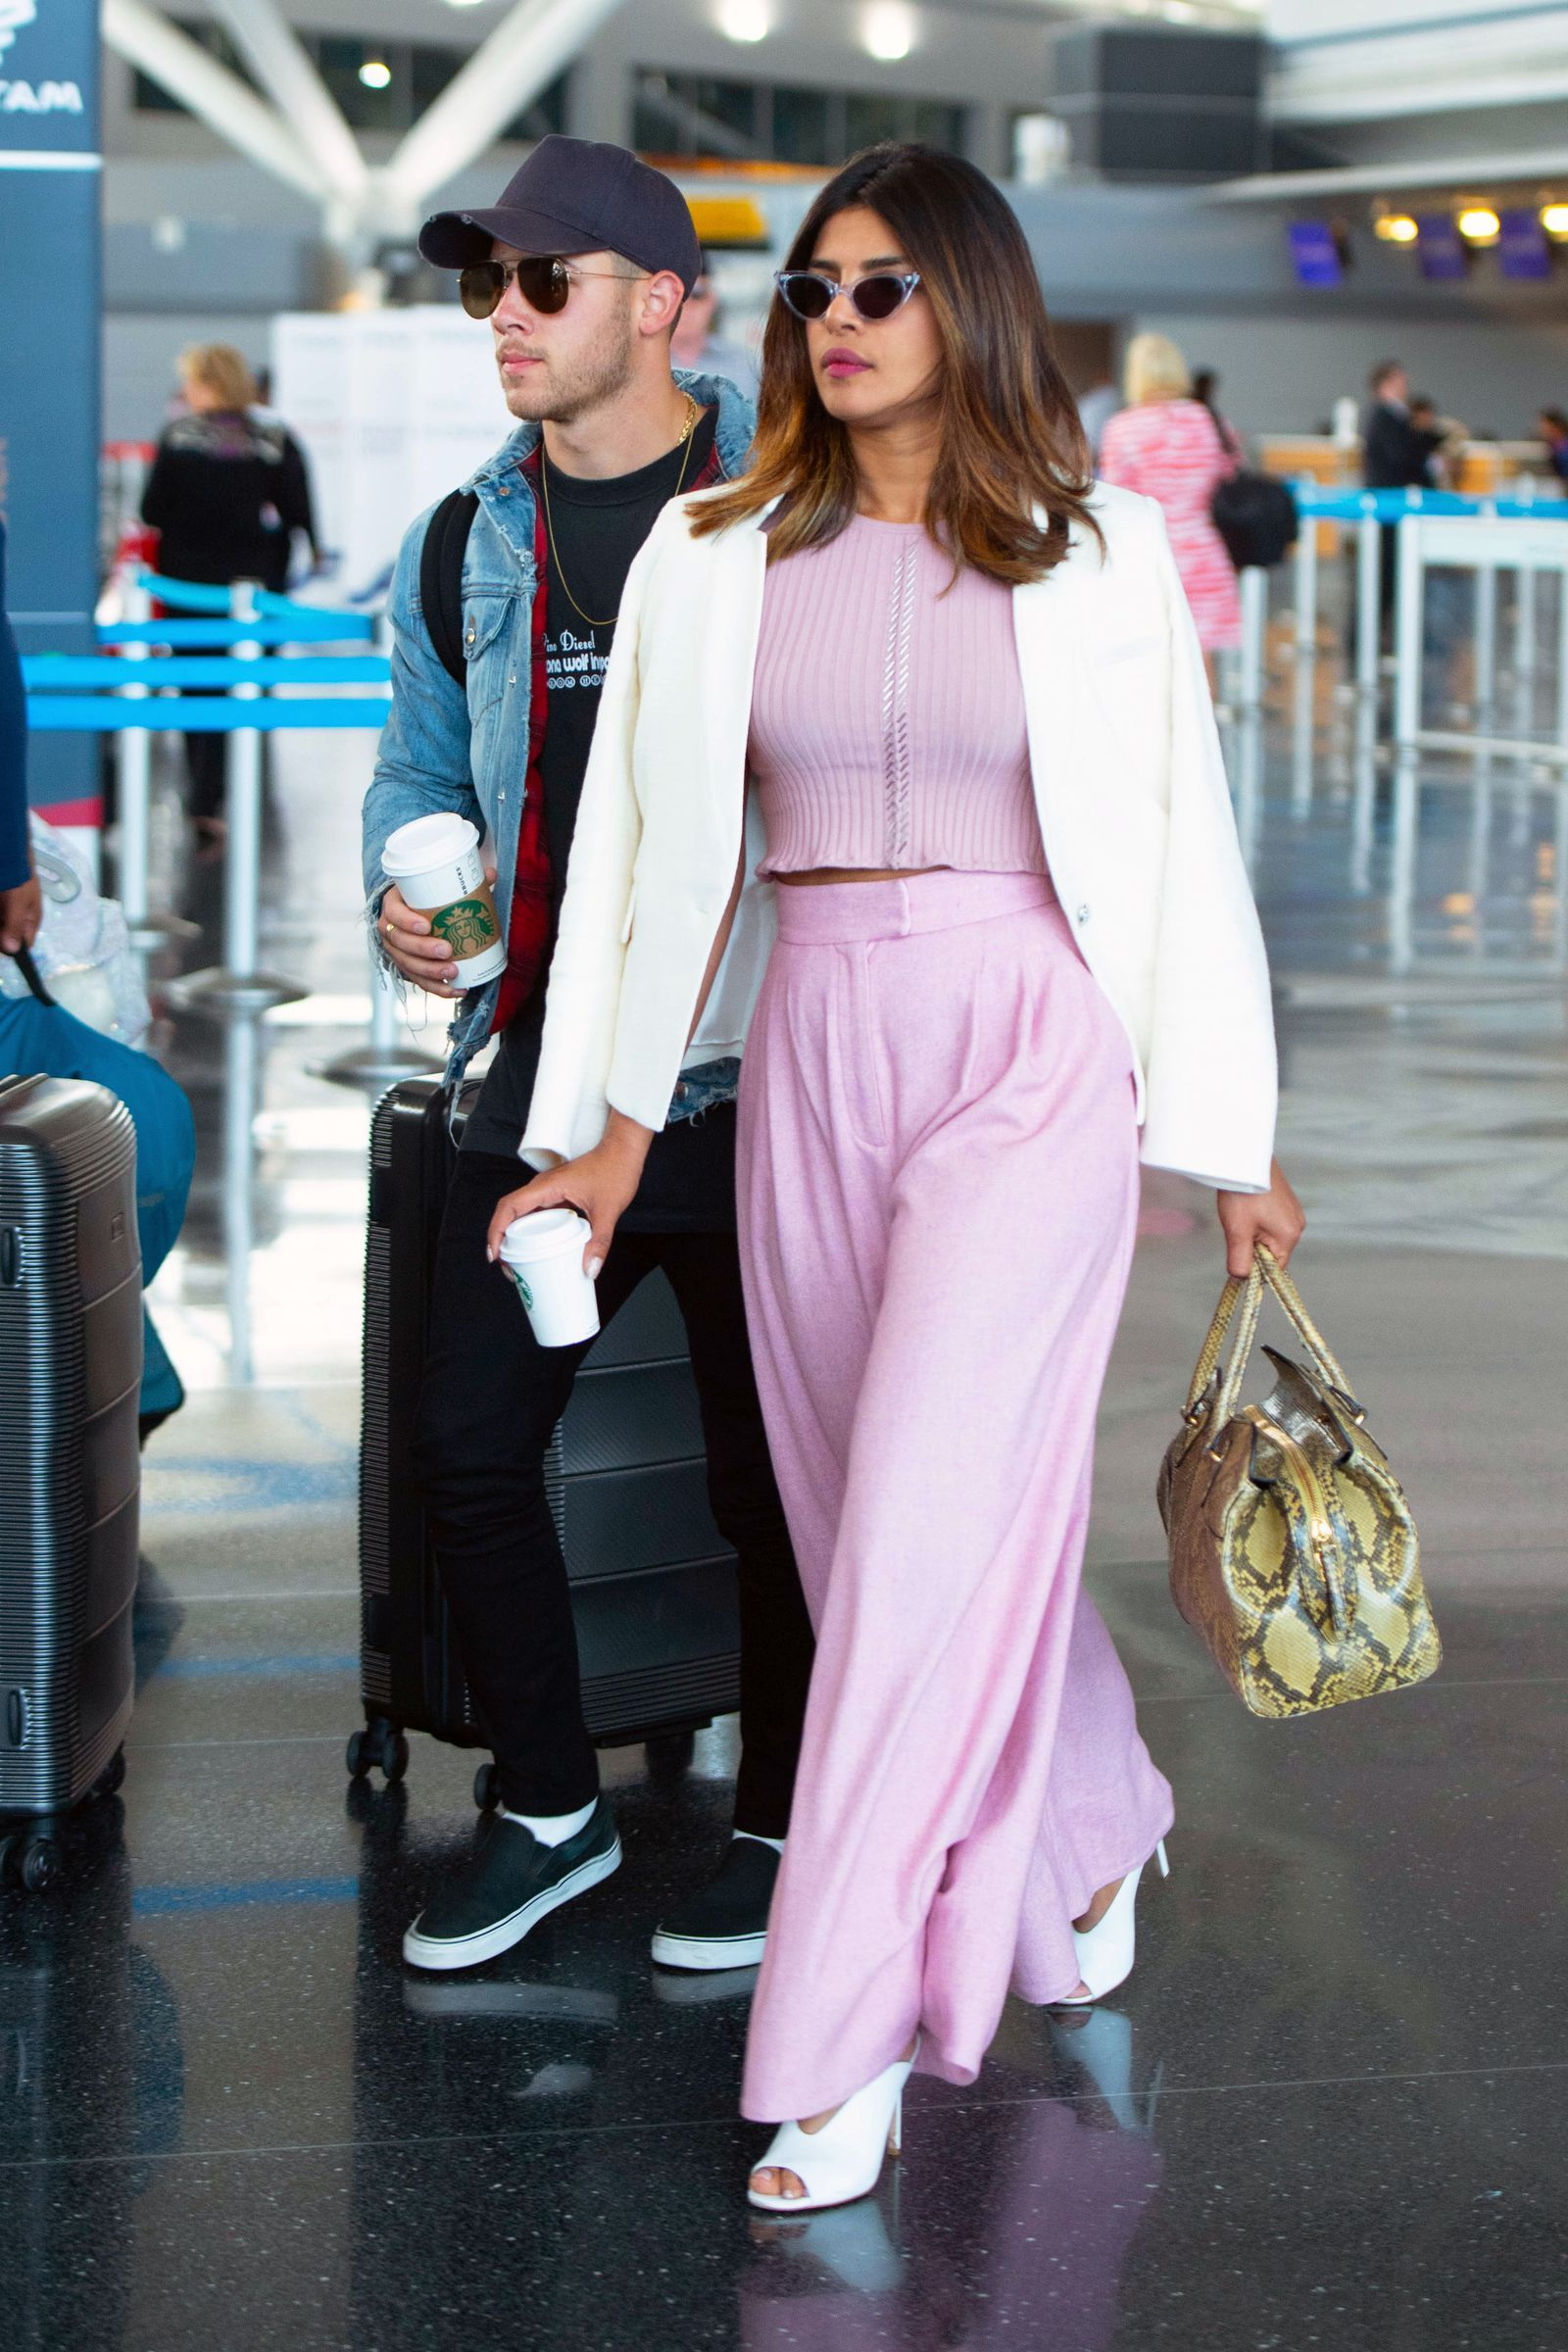 81a2792e654 105 Celebrities Looking Chic at the Airport—in Clothes You d ...